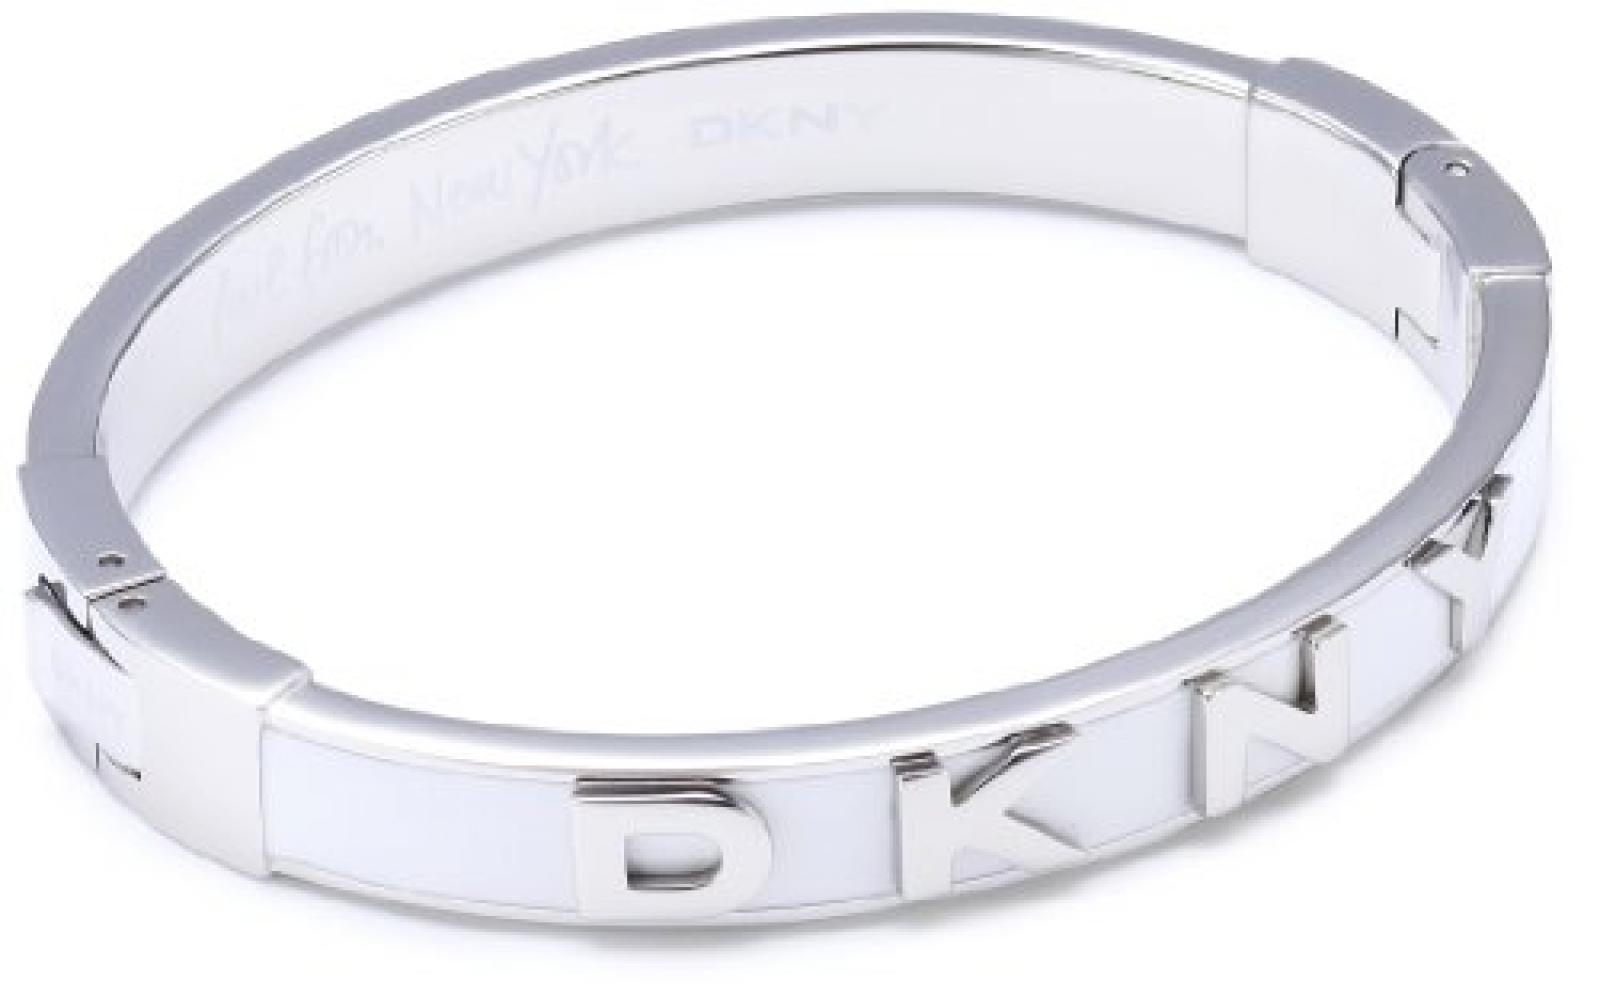 DKNY Damen-Armband Spring 2013 Silber Emaille silber NJ1934040